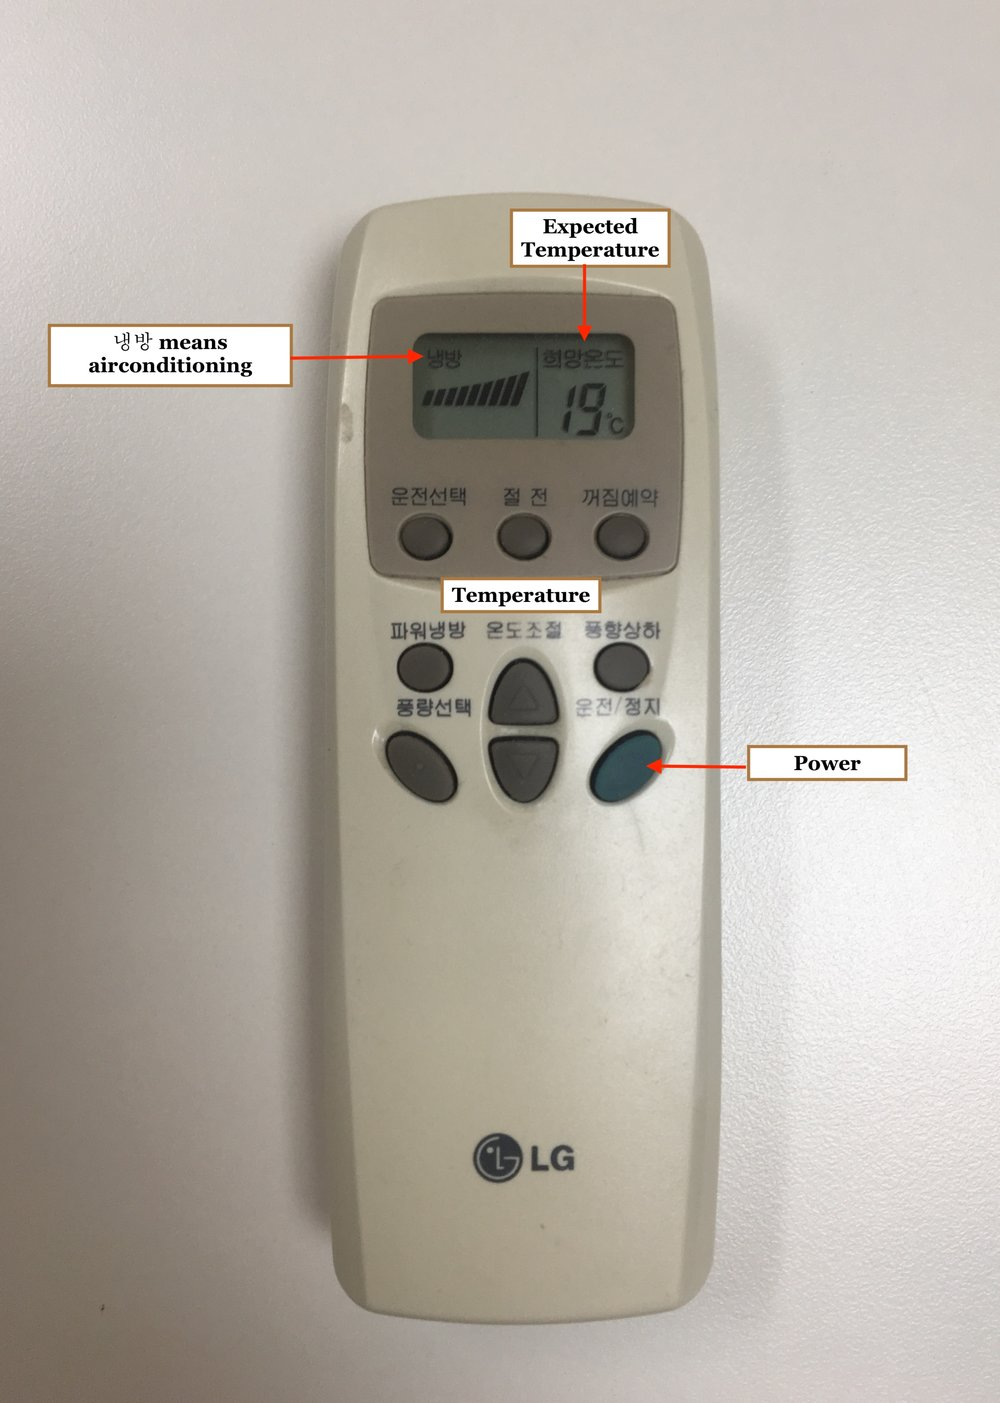 How to use airconditioner remote - 전원 is POWER   냉방is airconditioningIF the room is not cool enough, please check if it's on 냉방. You can control that button with 운전선택 on the very top left. Also, you can control temperature by arrows in the middle.* Please make sure that the window to the balcony should be closed. Also, please make sure to open the window outside the balcony.